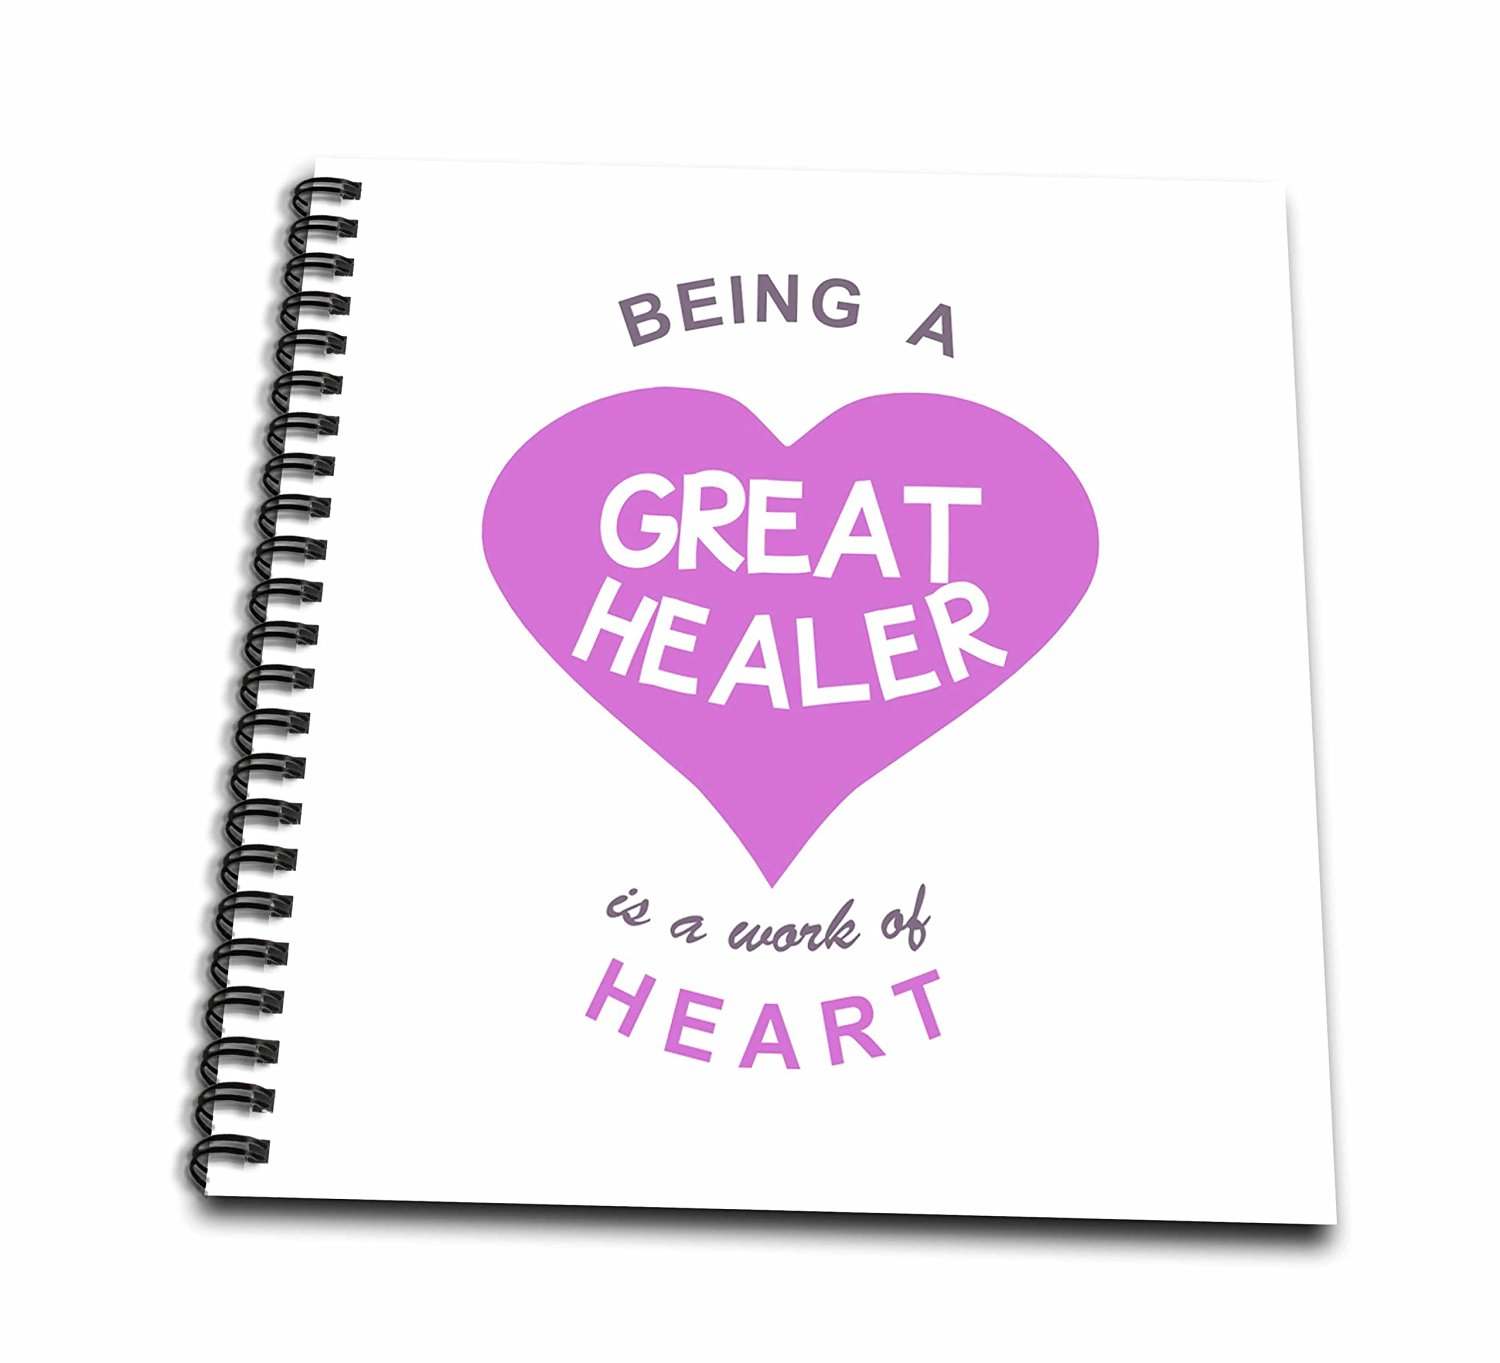 InspirationzStore Love series - Being a Great Healer is a work of Heart - super awesome good Dr quote - Memory Book 12 x 12 inch (db_183868_2)